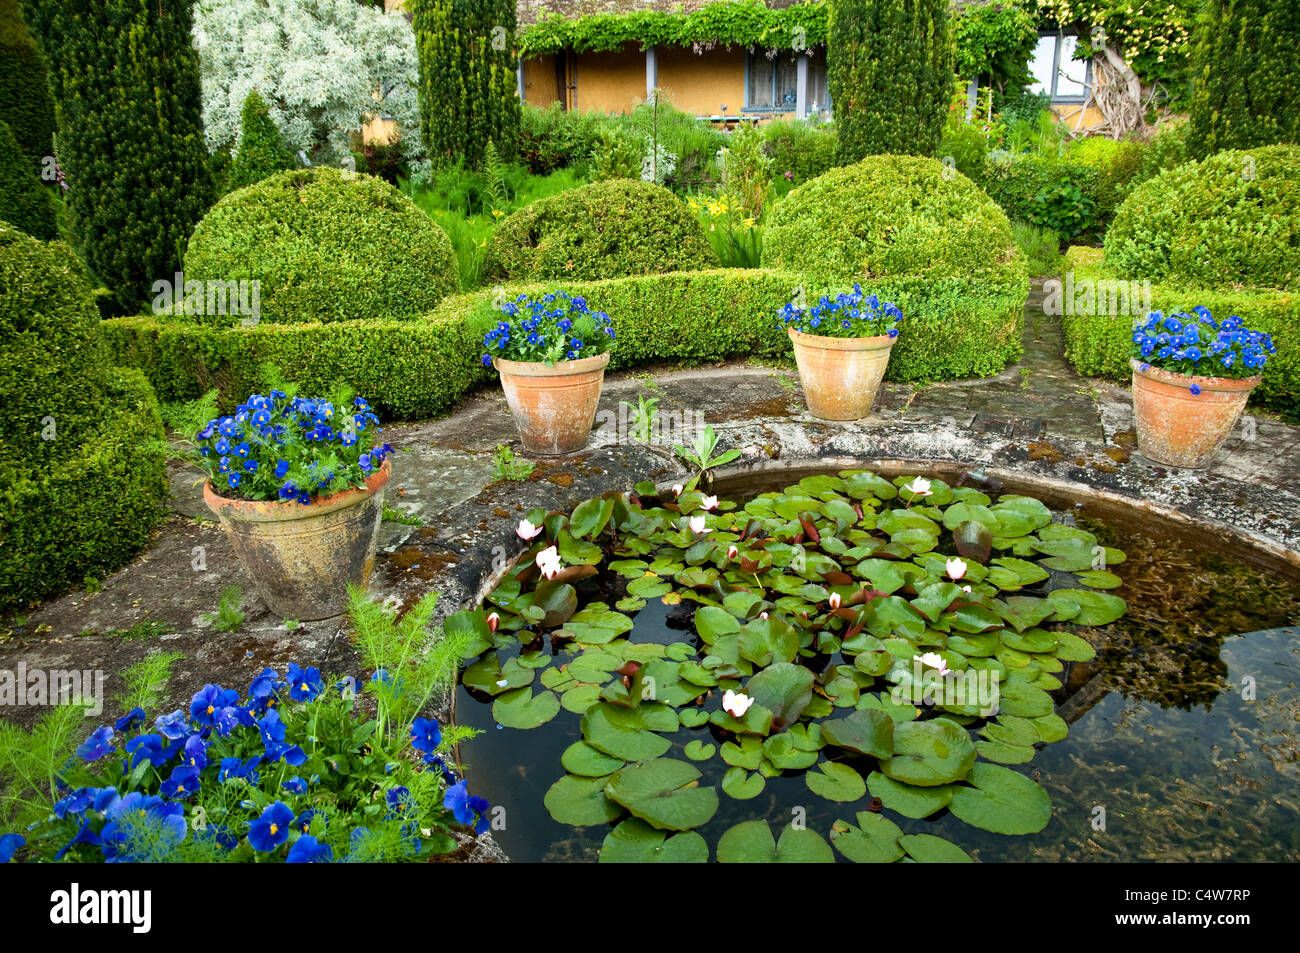 Formal pond garden with box hedging, yew topiary and terracotta pots with blue pansy at Bryans Ground, Herefordshire, - Stock Image